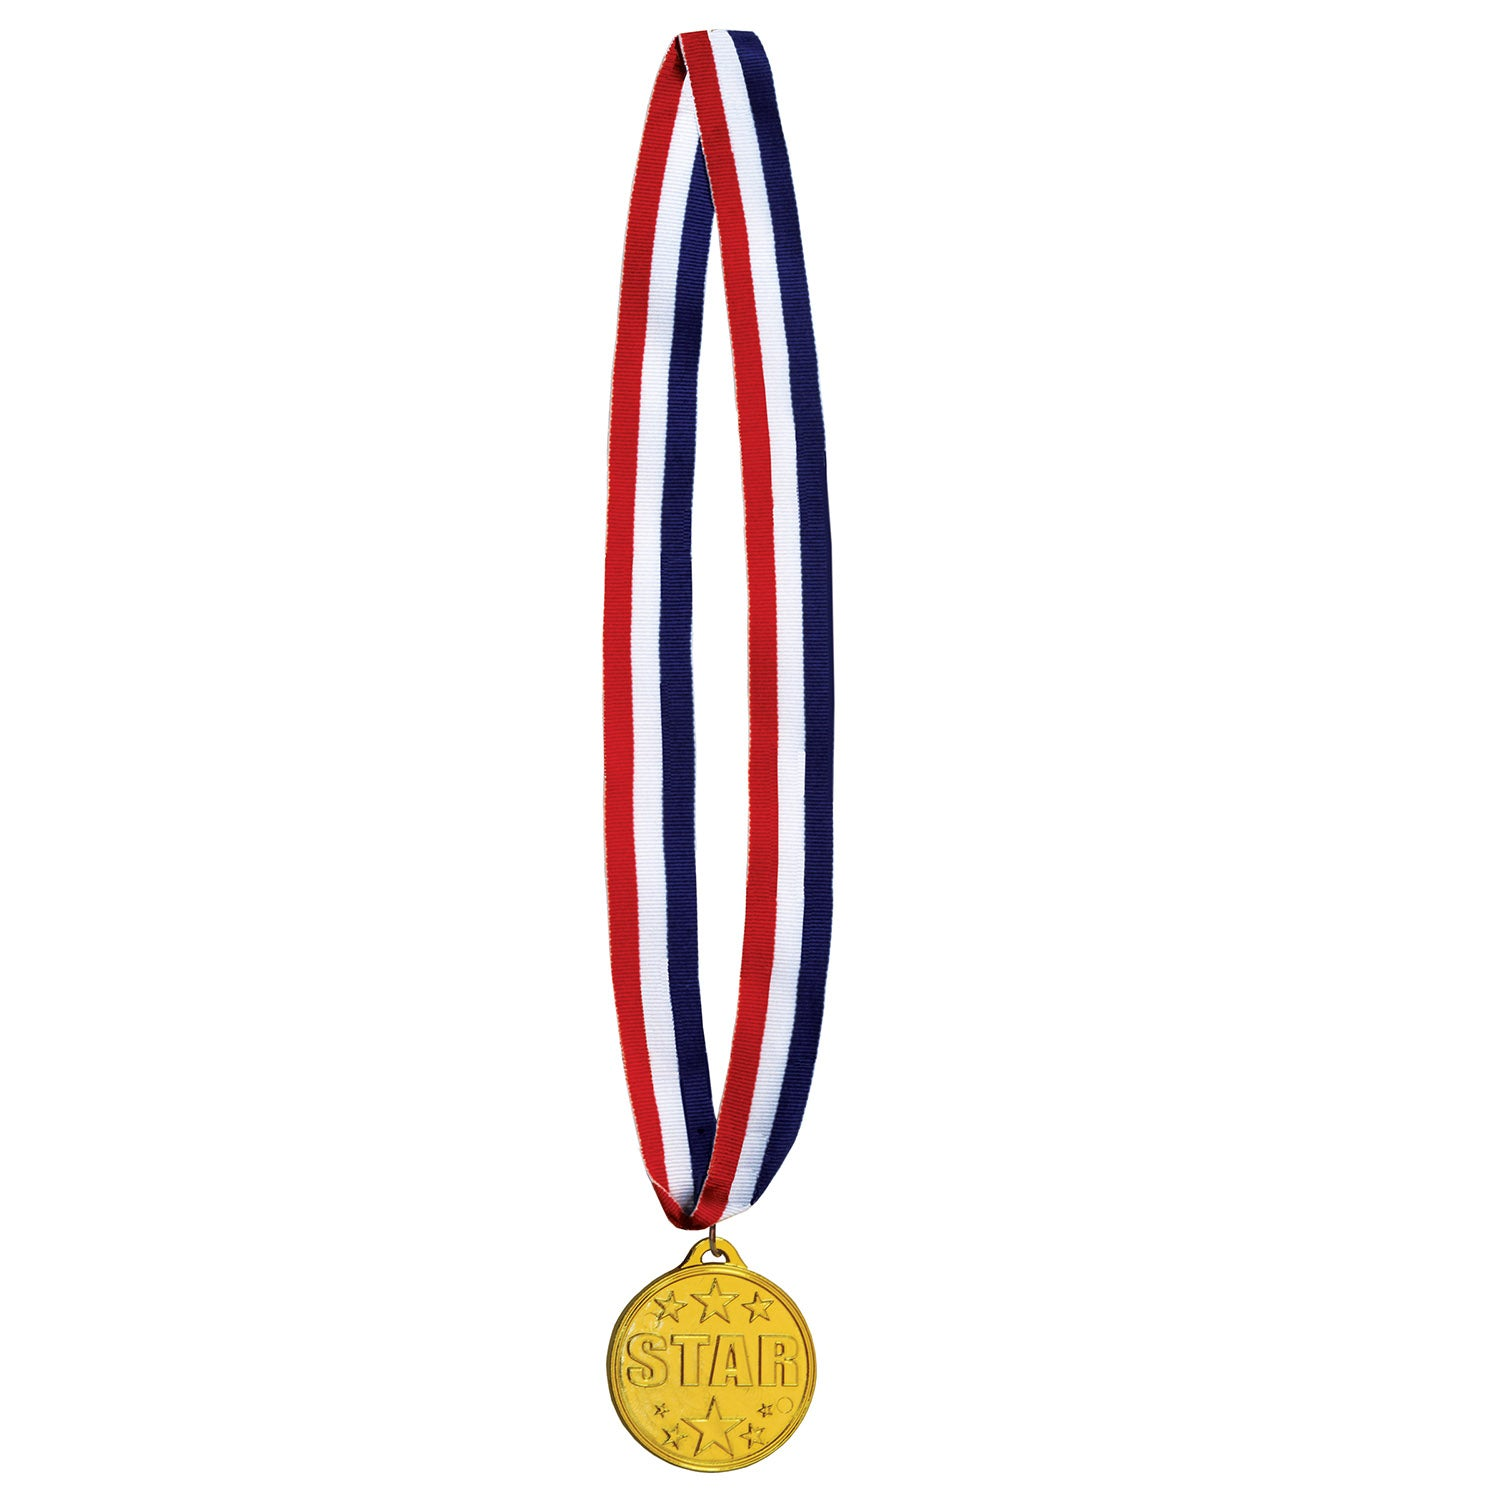 Star Medal w/Ribbon by Beistle - Sports Theme Decorations